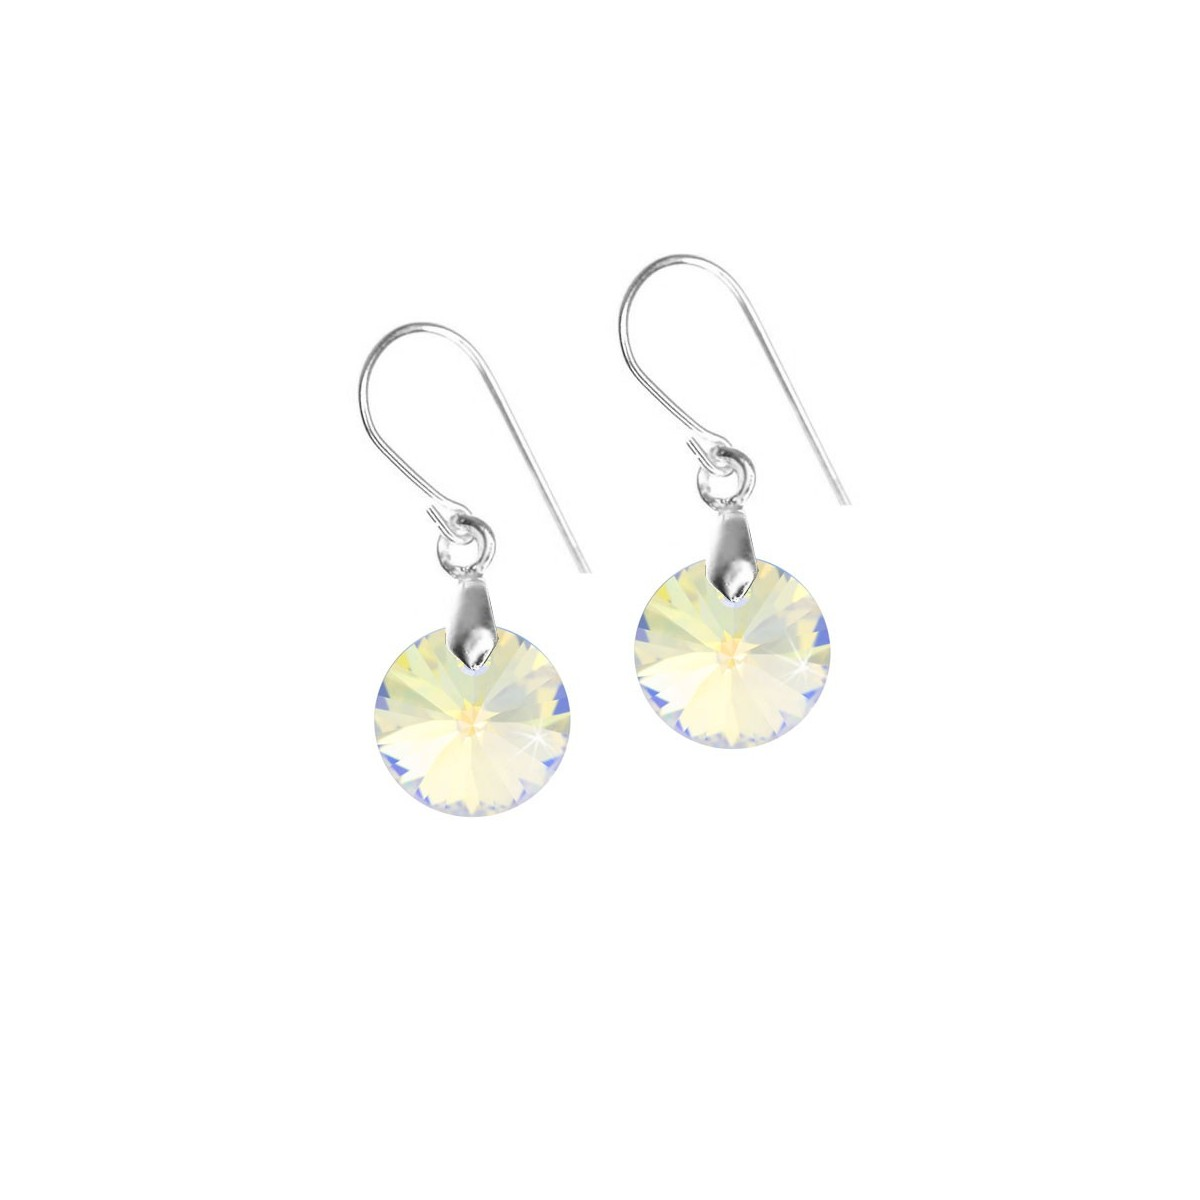 BS121-SE004-IRIS Boucles d'oreilles So Charm made with crystal from Swarovski irisé